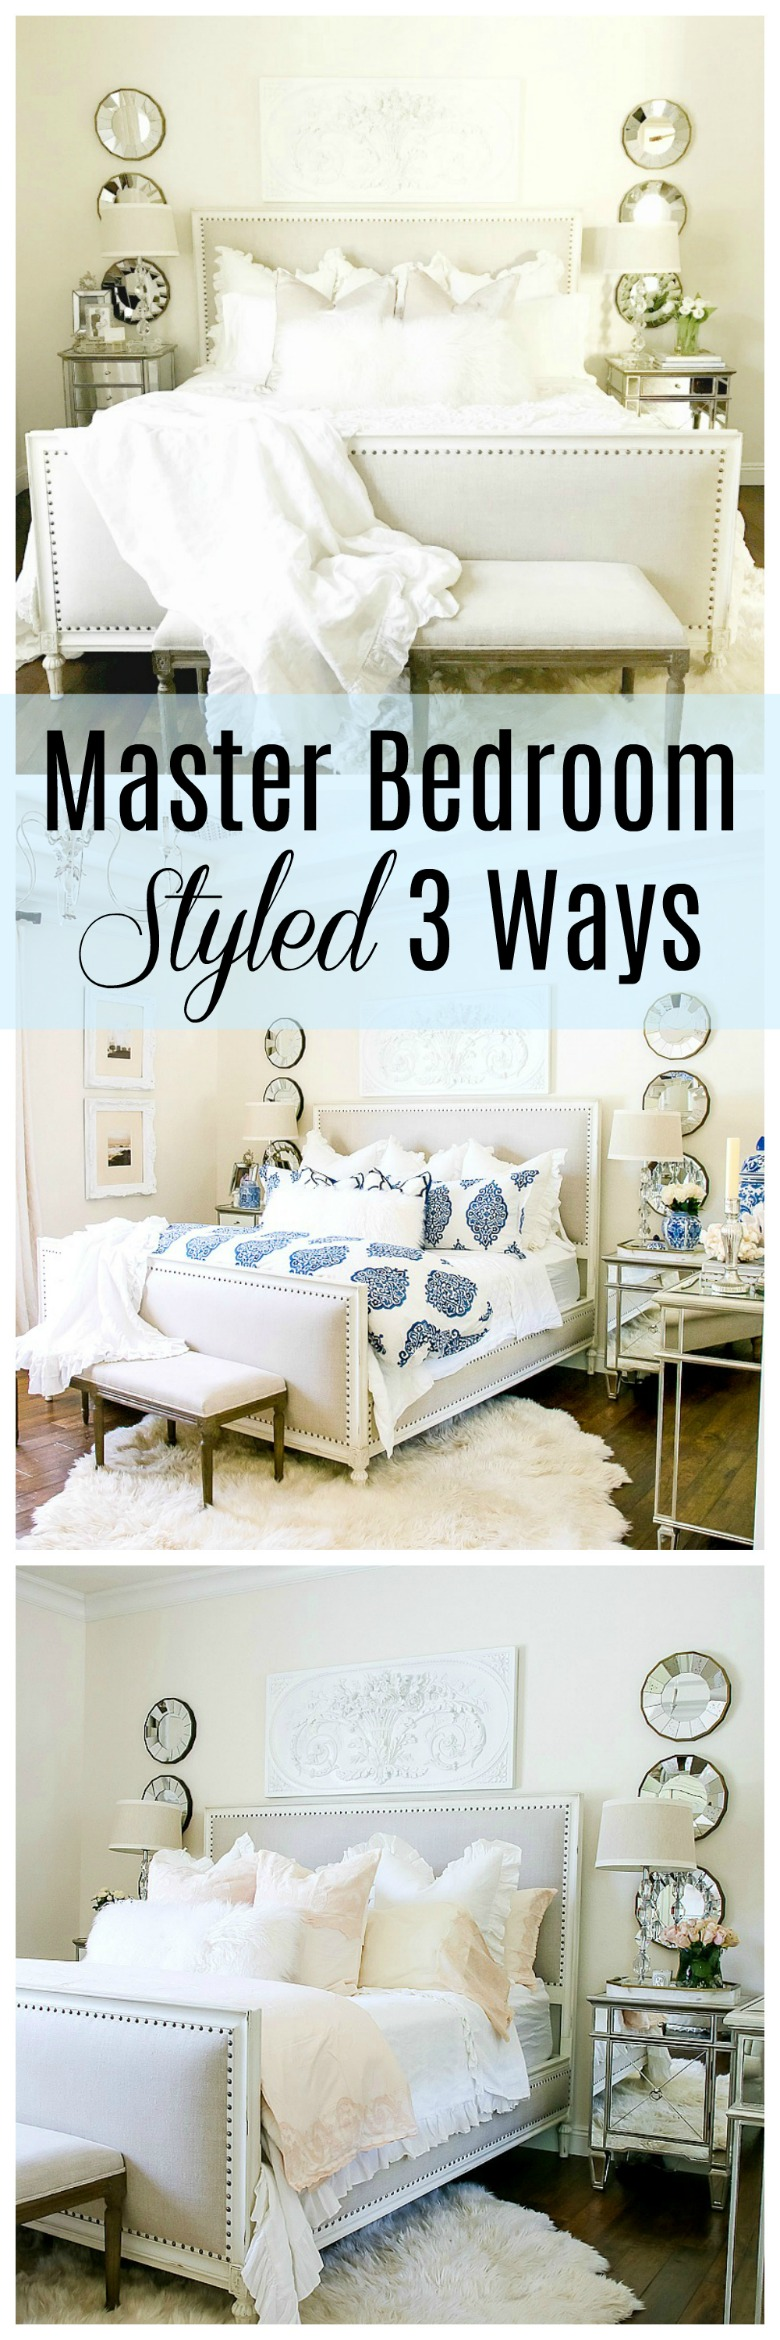 Master Bedroom Styled 3 Ways for Summer - Tips for Decorating ... on chocolate master bedroom, reading master bedroom, lighting master bedroom, organizing master bedroom, halloween master bedroom, aqua and brown master bedroom, painting master bedroom, furniture master bedroom, paint master bedroom, decorate my master bedroom, decorating master bedroom, family master bedroom, diy master bedroom, art master bedroom, staging master bedroom, design master bedroom, remodeling master bedroom, home master bedroom, small master bedroom, cleaning master bedroom,